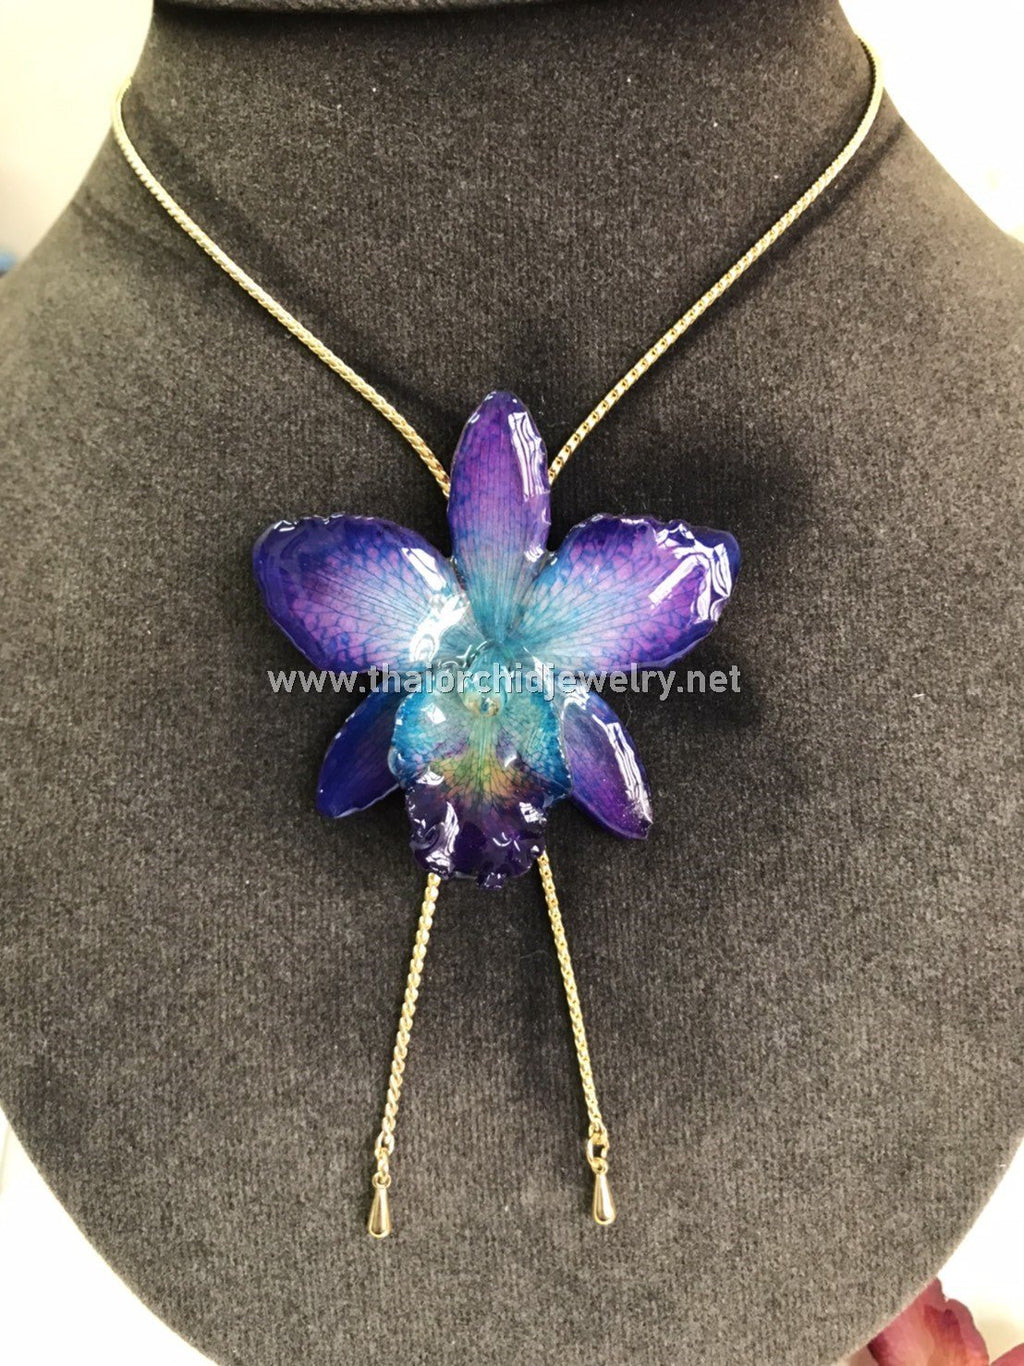 Cattleya Orchid Jewelry Slider Necklace Gold Plated 24K - Purple Turquoise